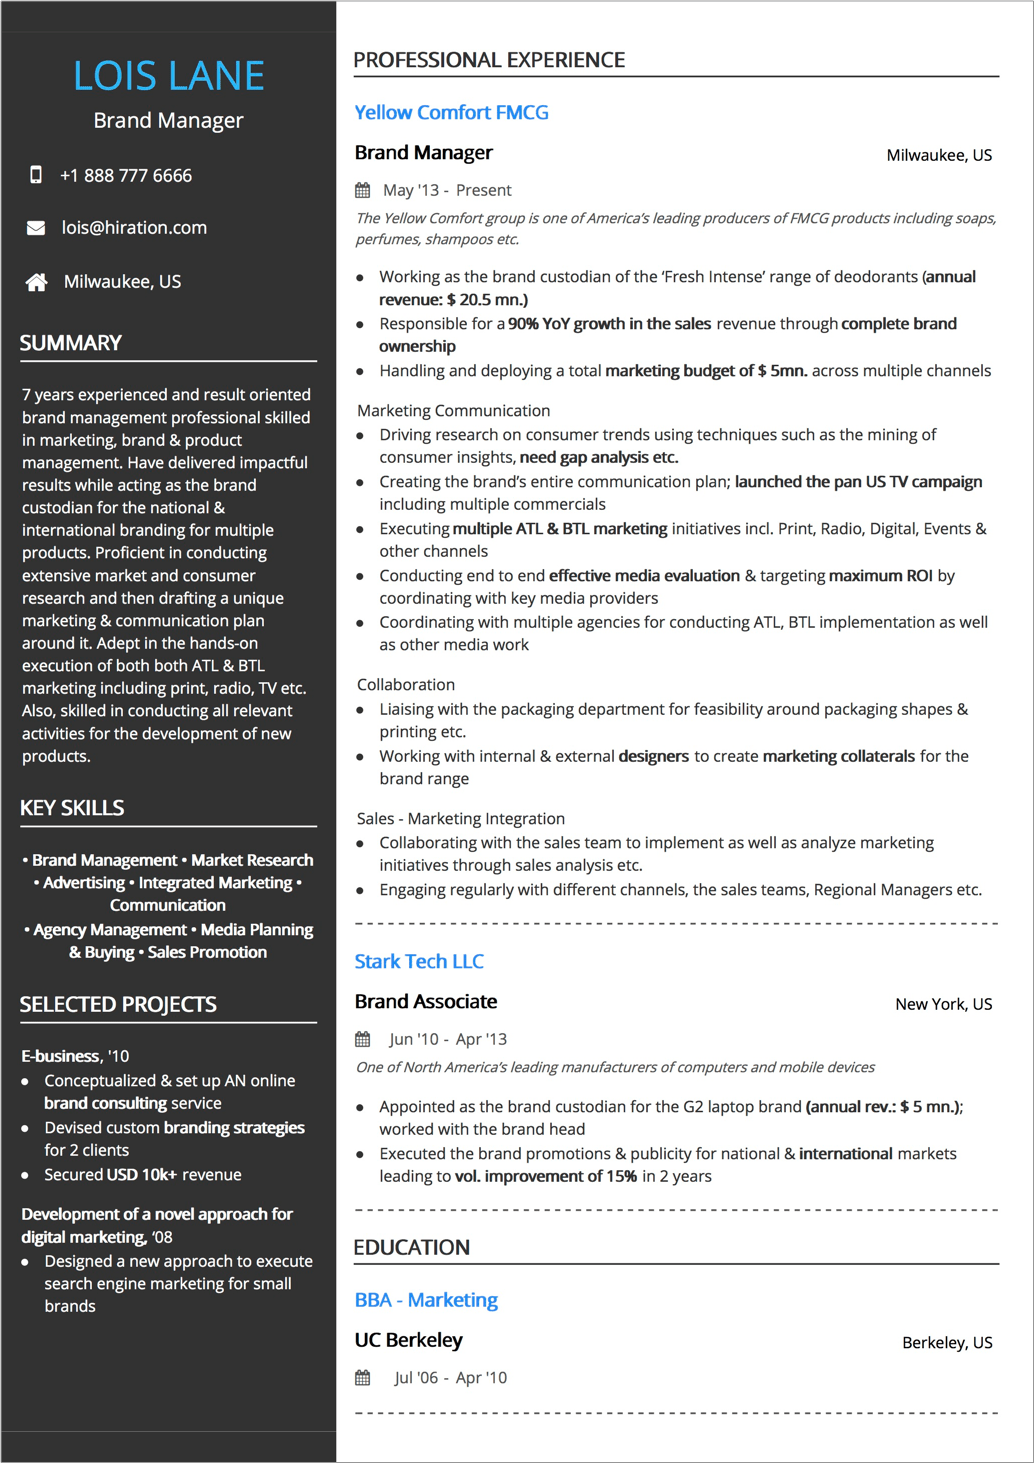 Resume Format Guide With Examples